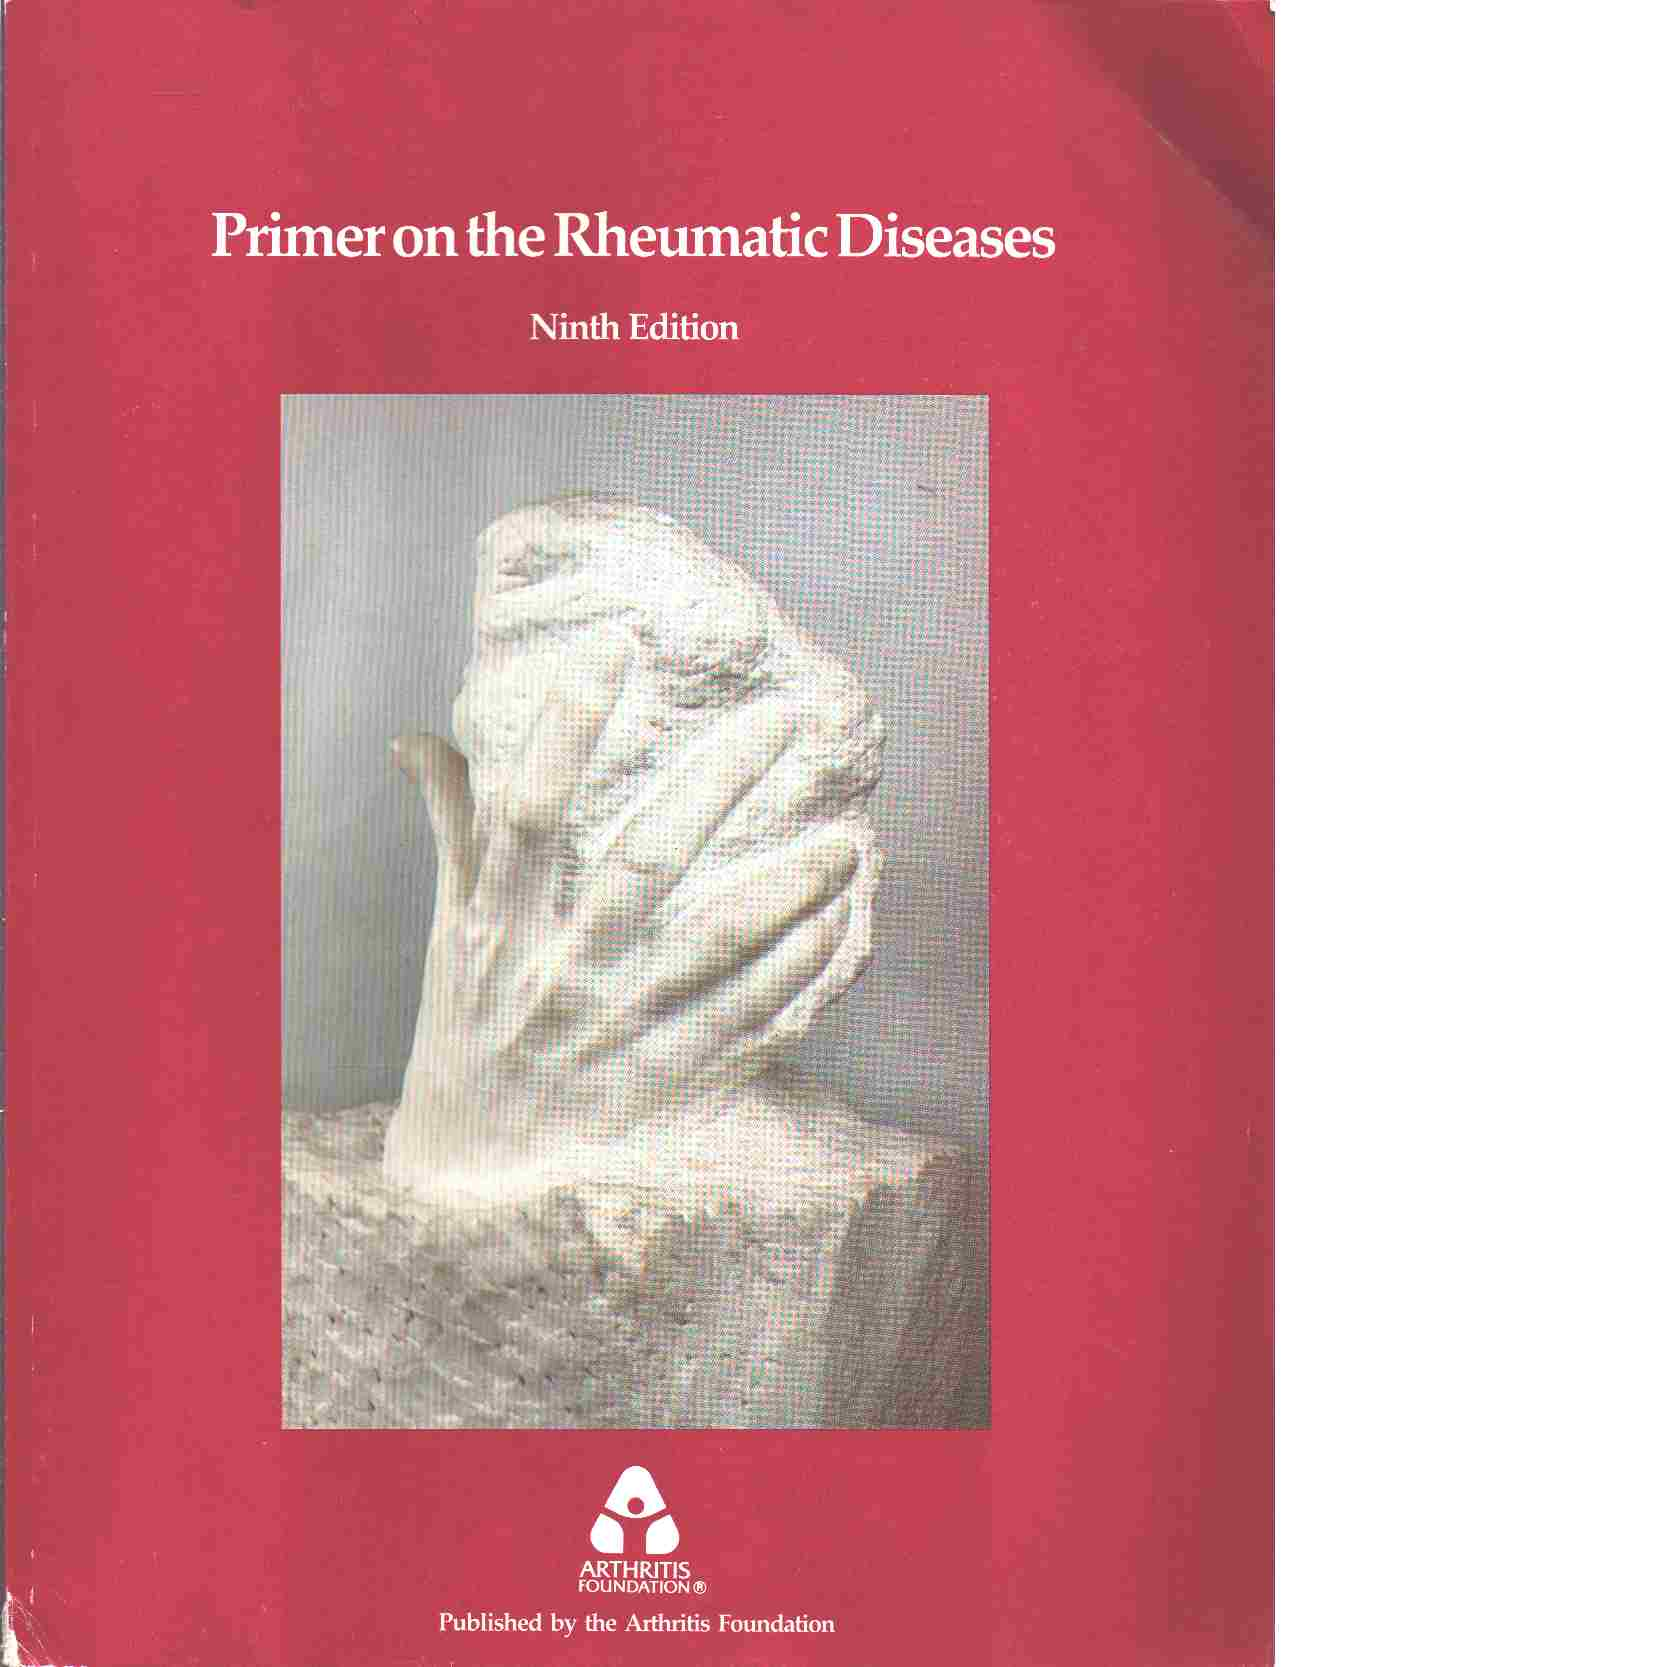 Primer on the rheumatic diseases - Red. Schumacher, H. Ralph och Klippel, John H. samt Robinson, Dwight R.